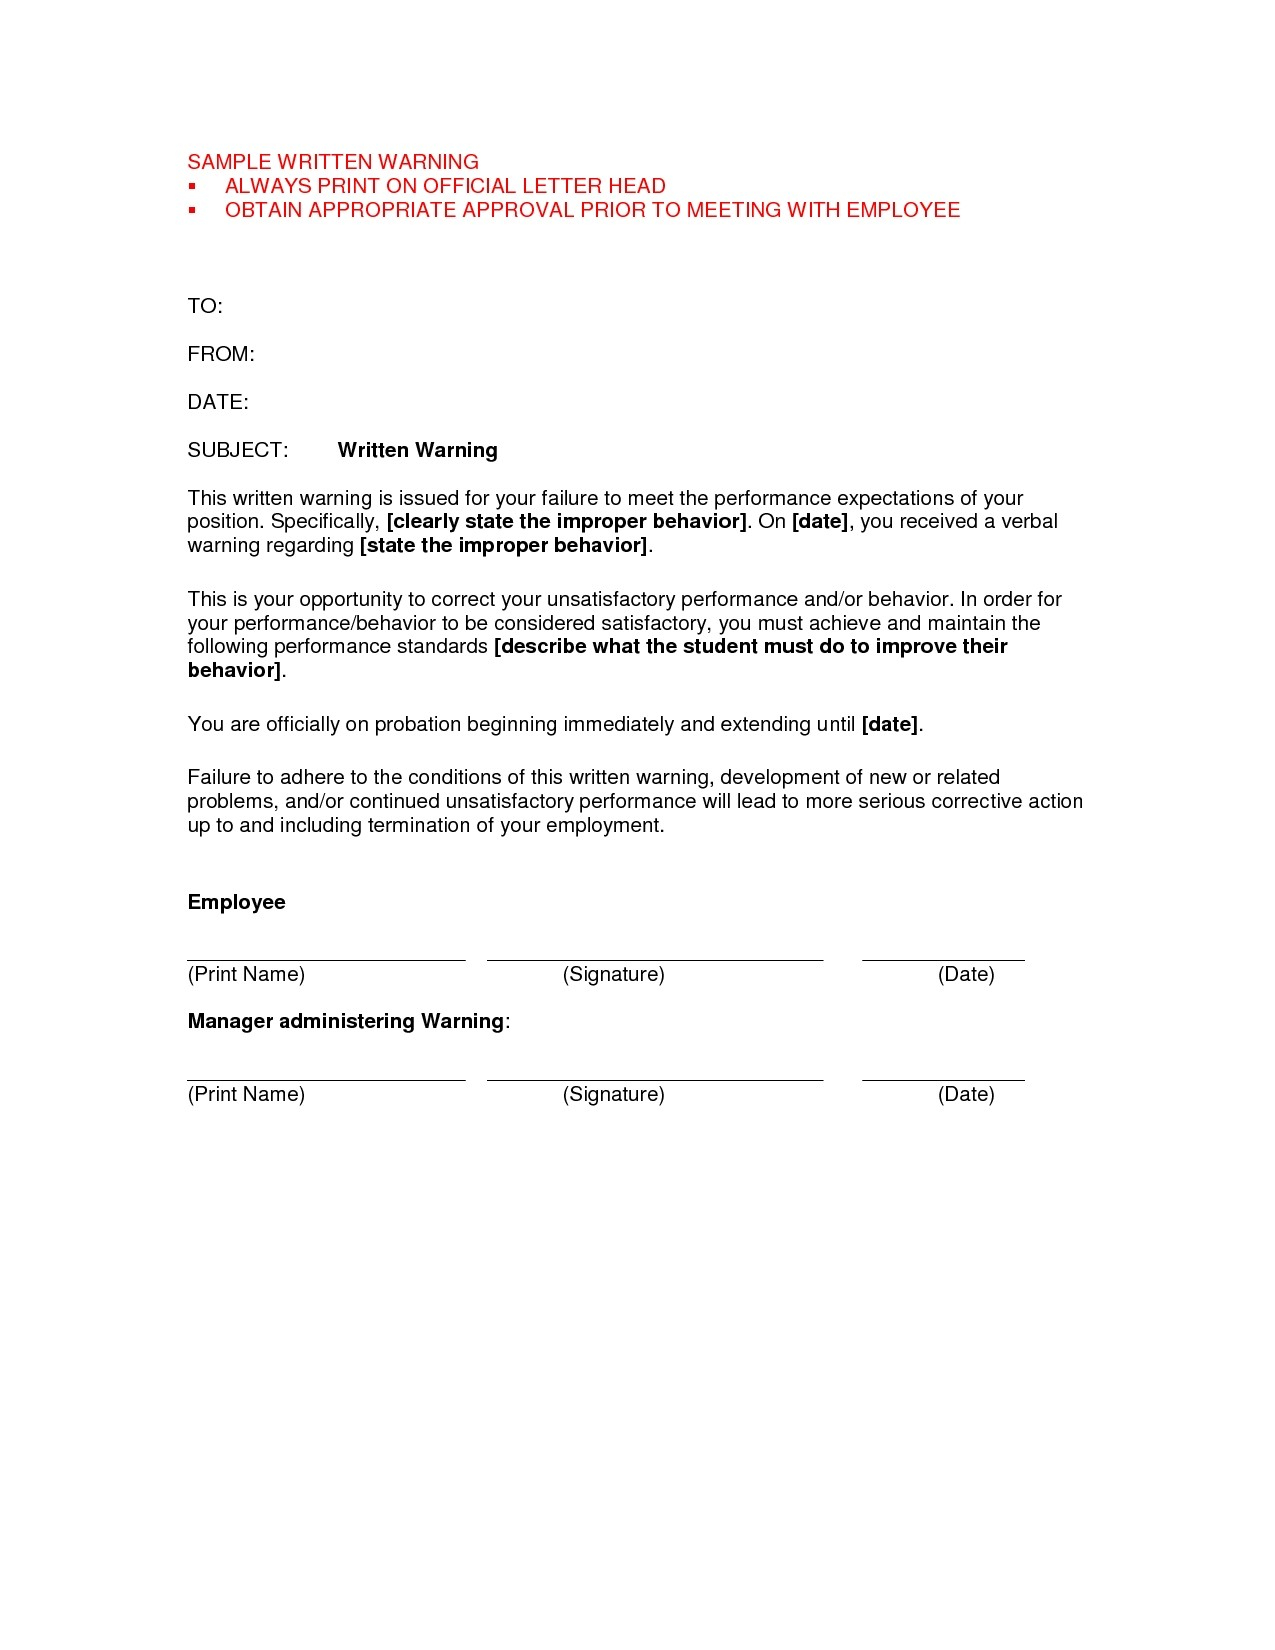 Verbal Warning Letter Template - Ficial Written Warning Template Employee Written Warning Template